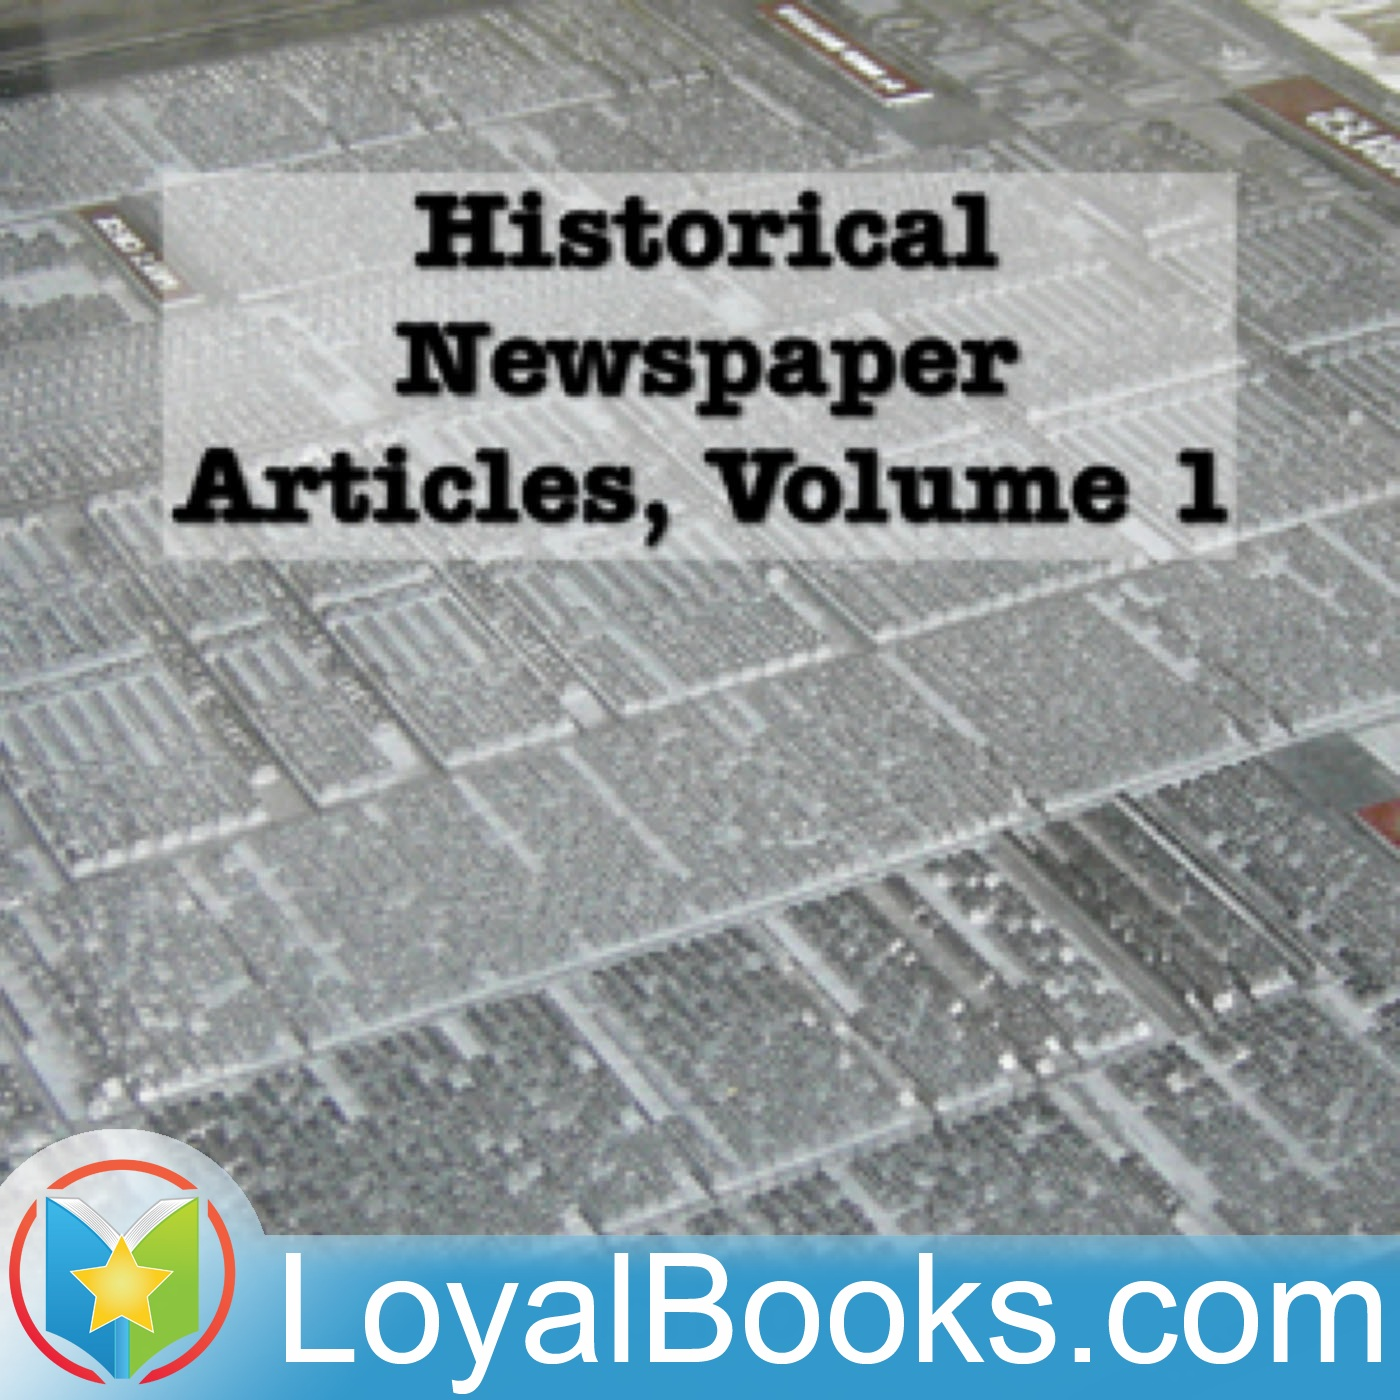 <![CDATA[Historical Newspaper Articles by Various]]>